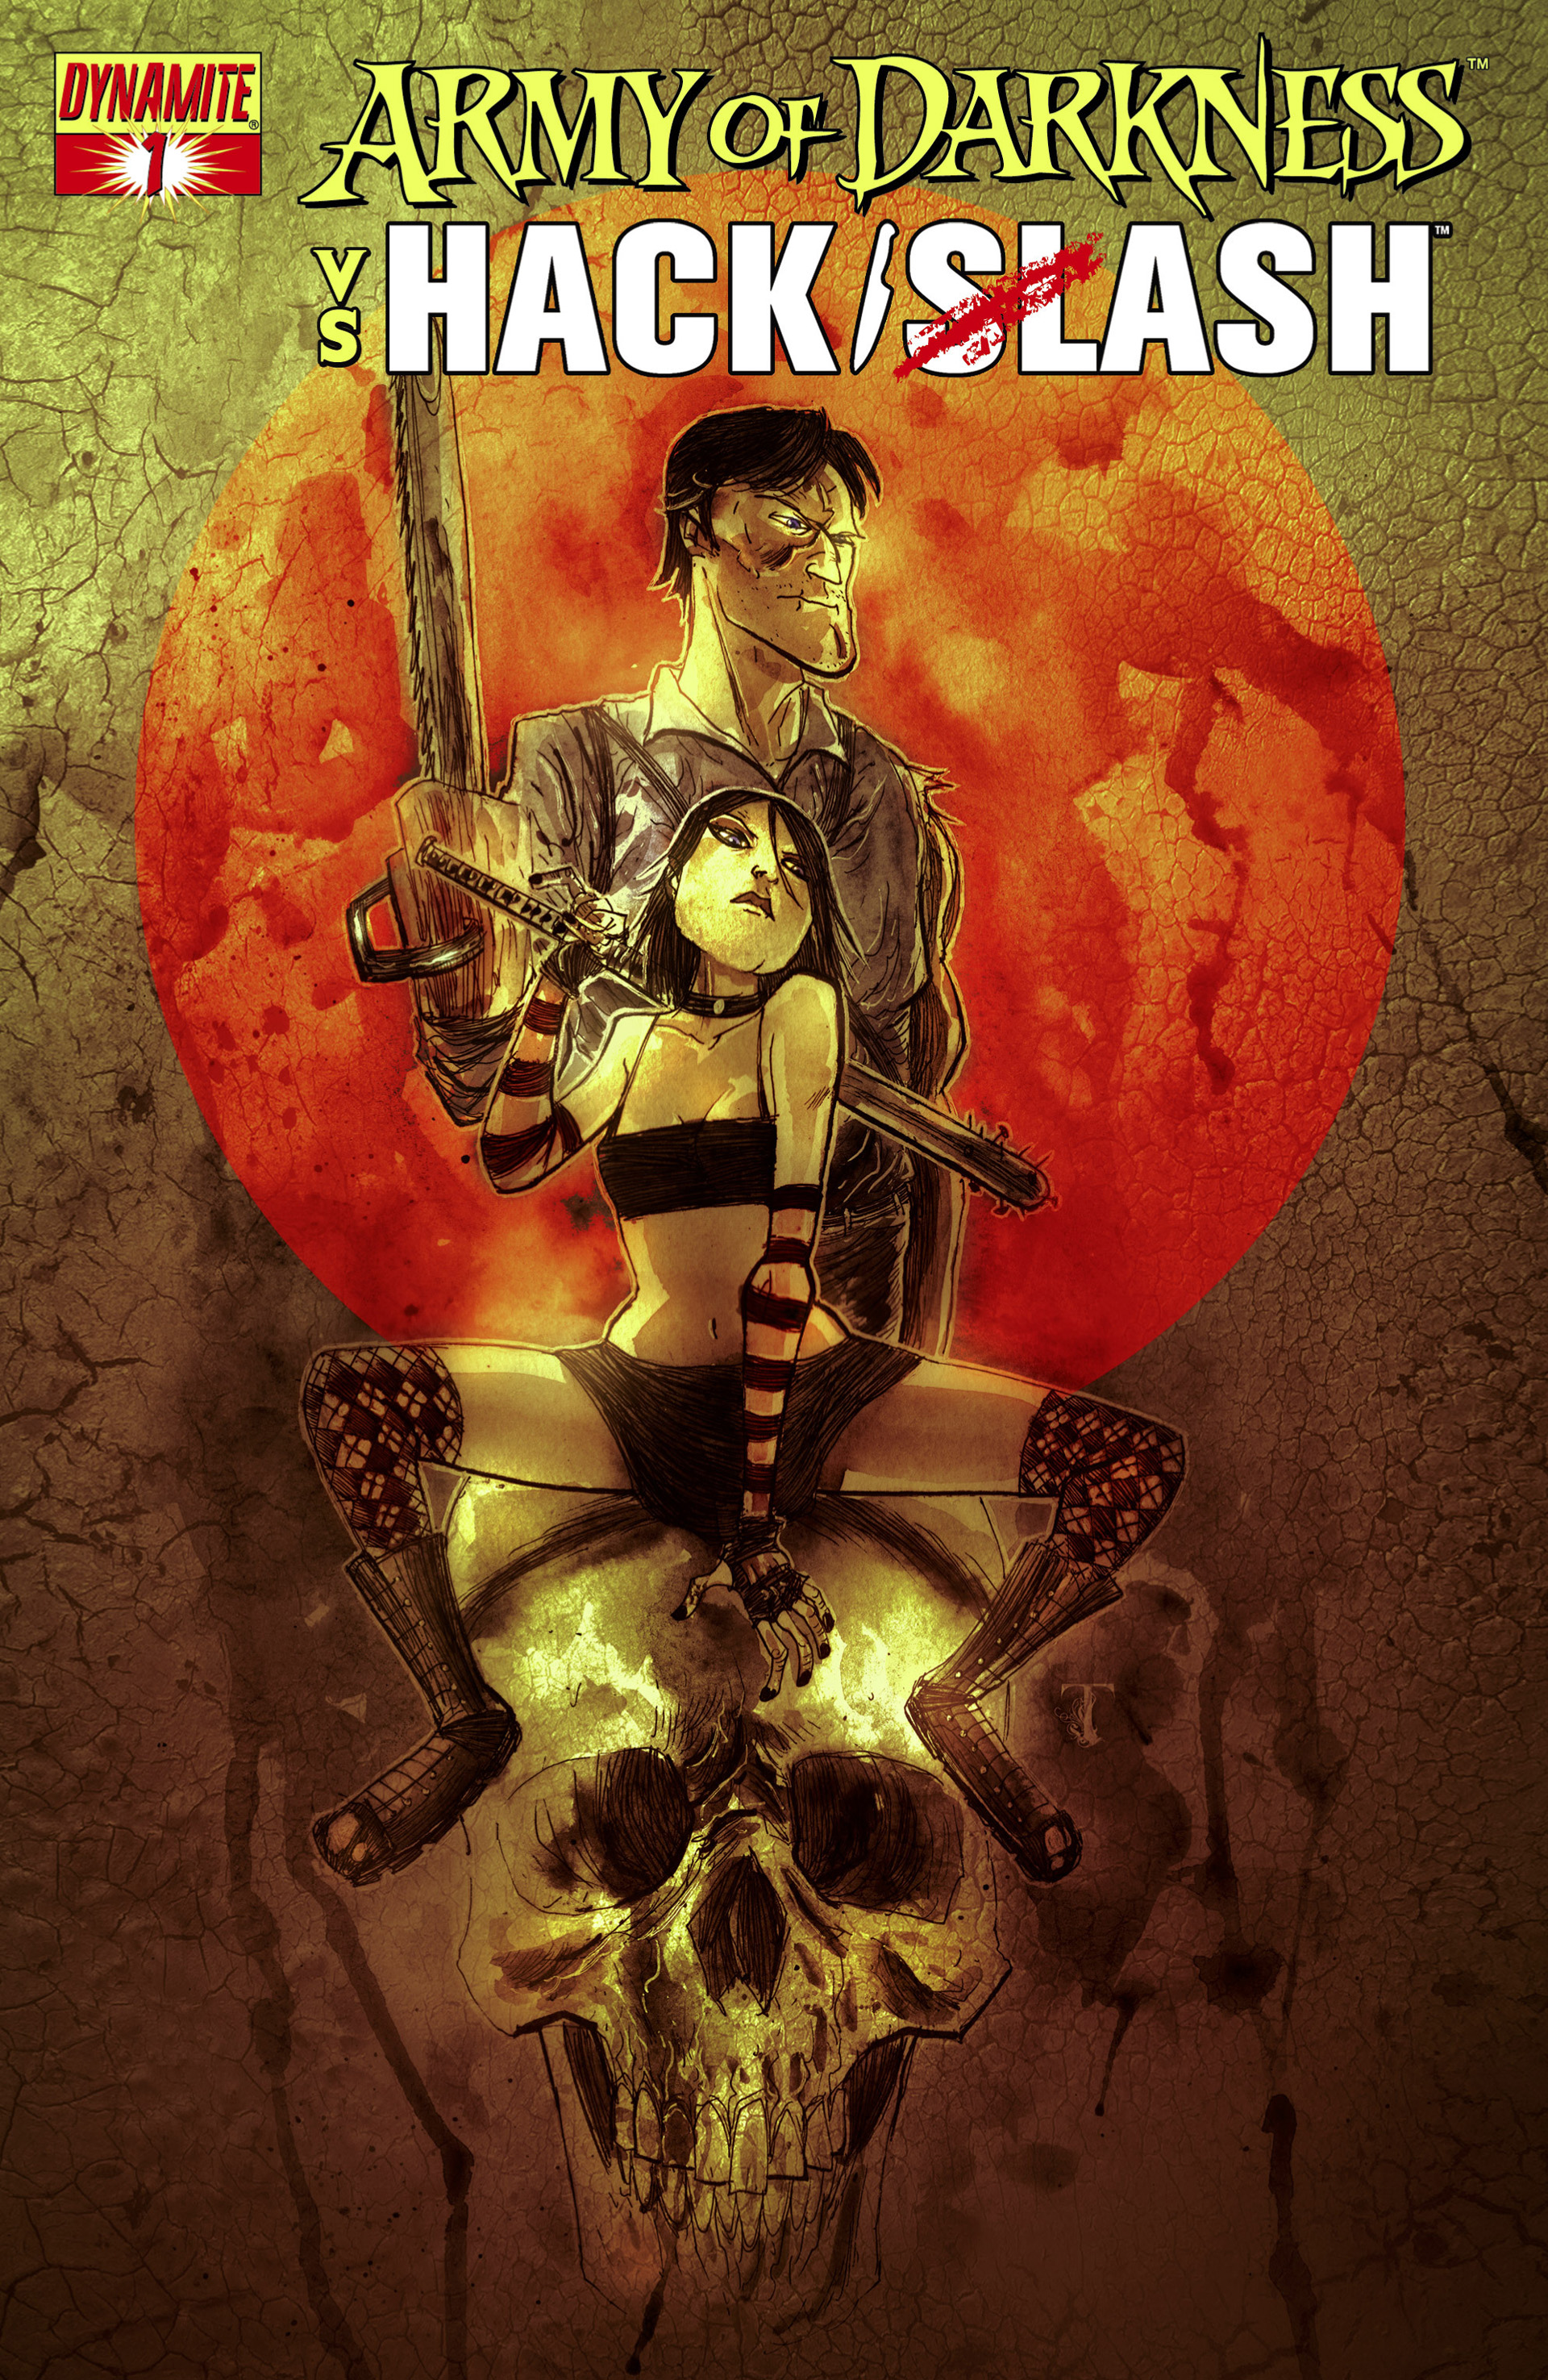 Read online Army of Darkness vs. Hack/Slash comic -  Issue #1 - 3